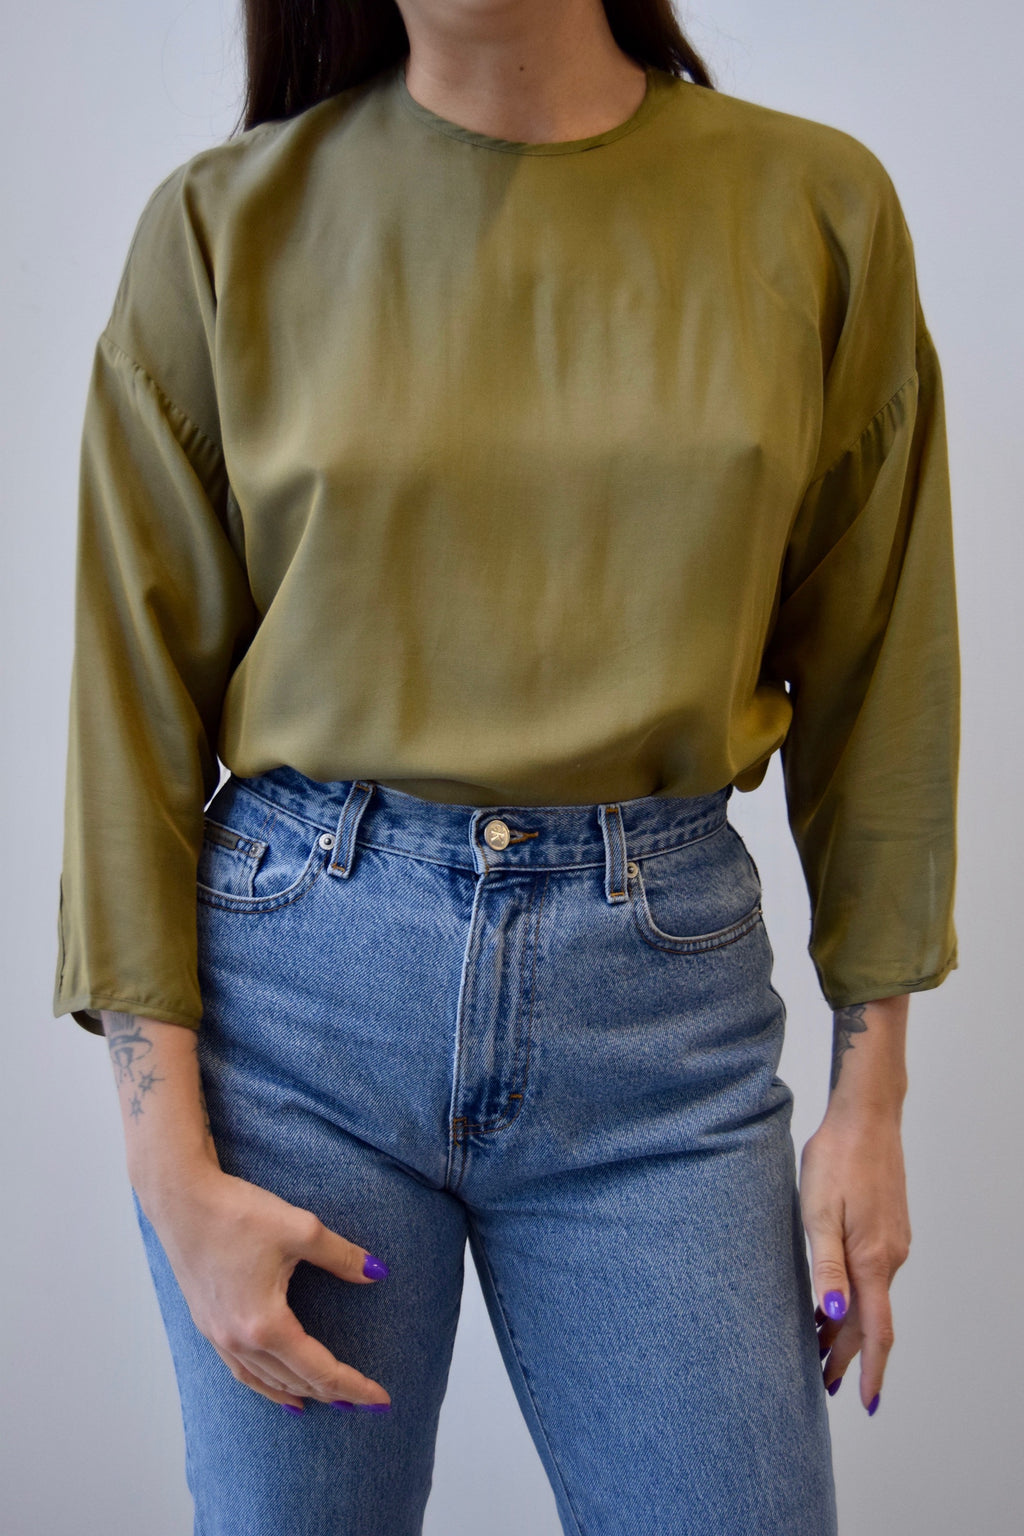 Max Mara Olive Silk Top FREE SHIPPING TO THE U.S.